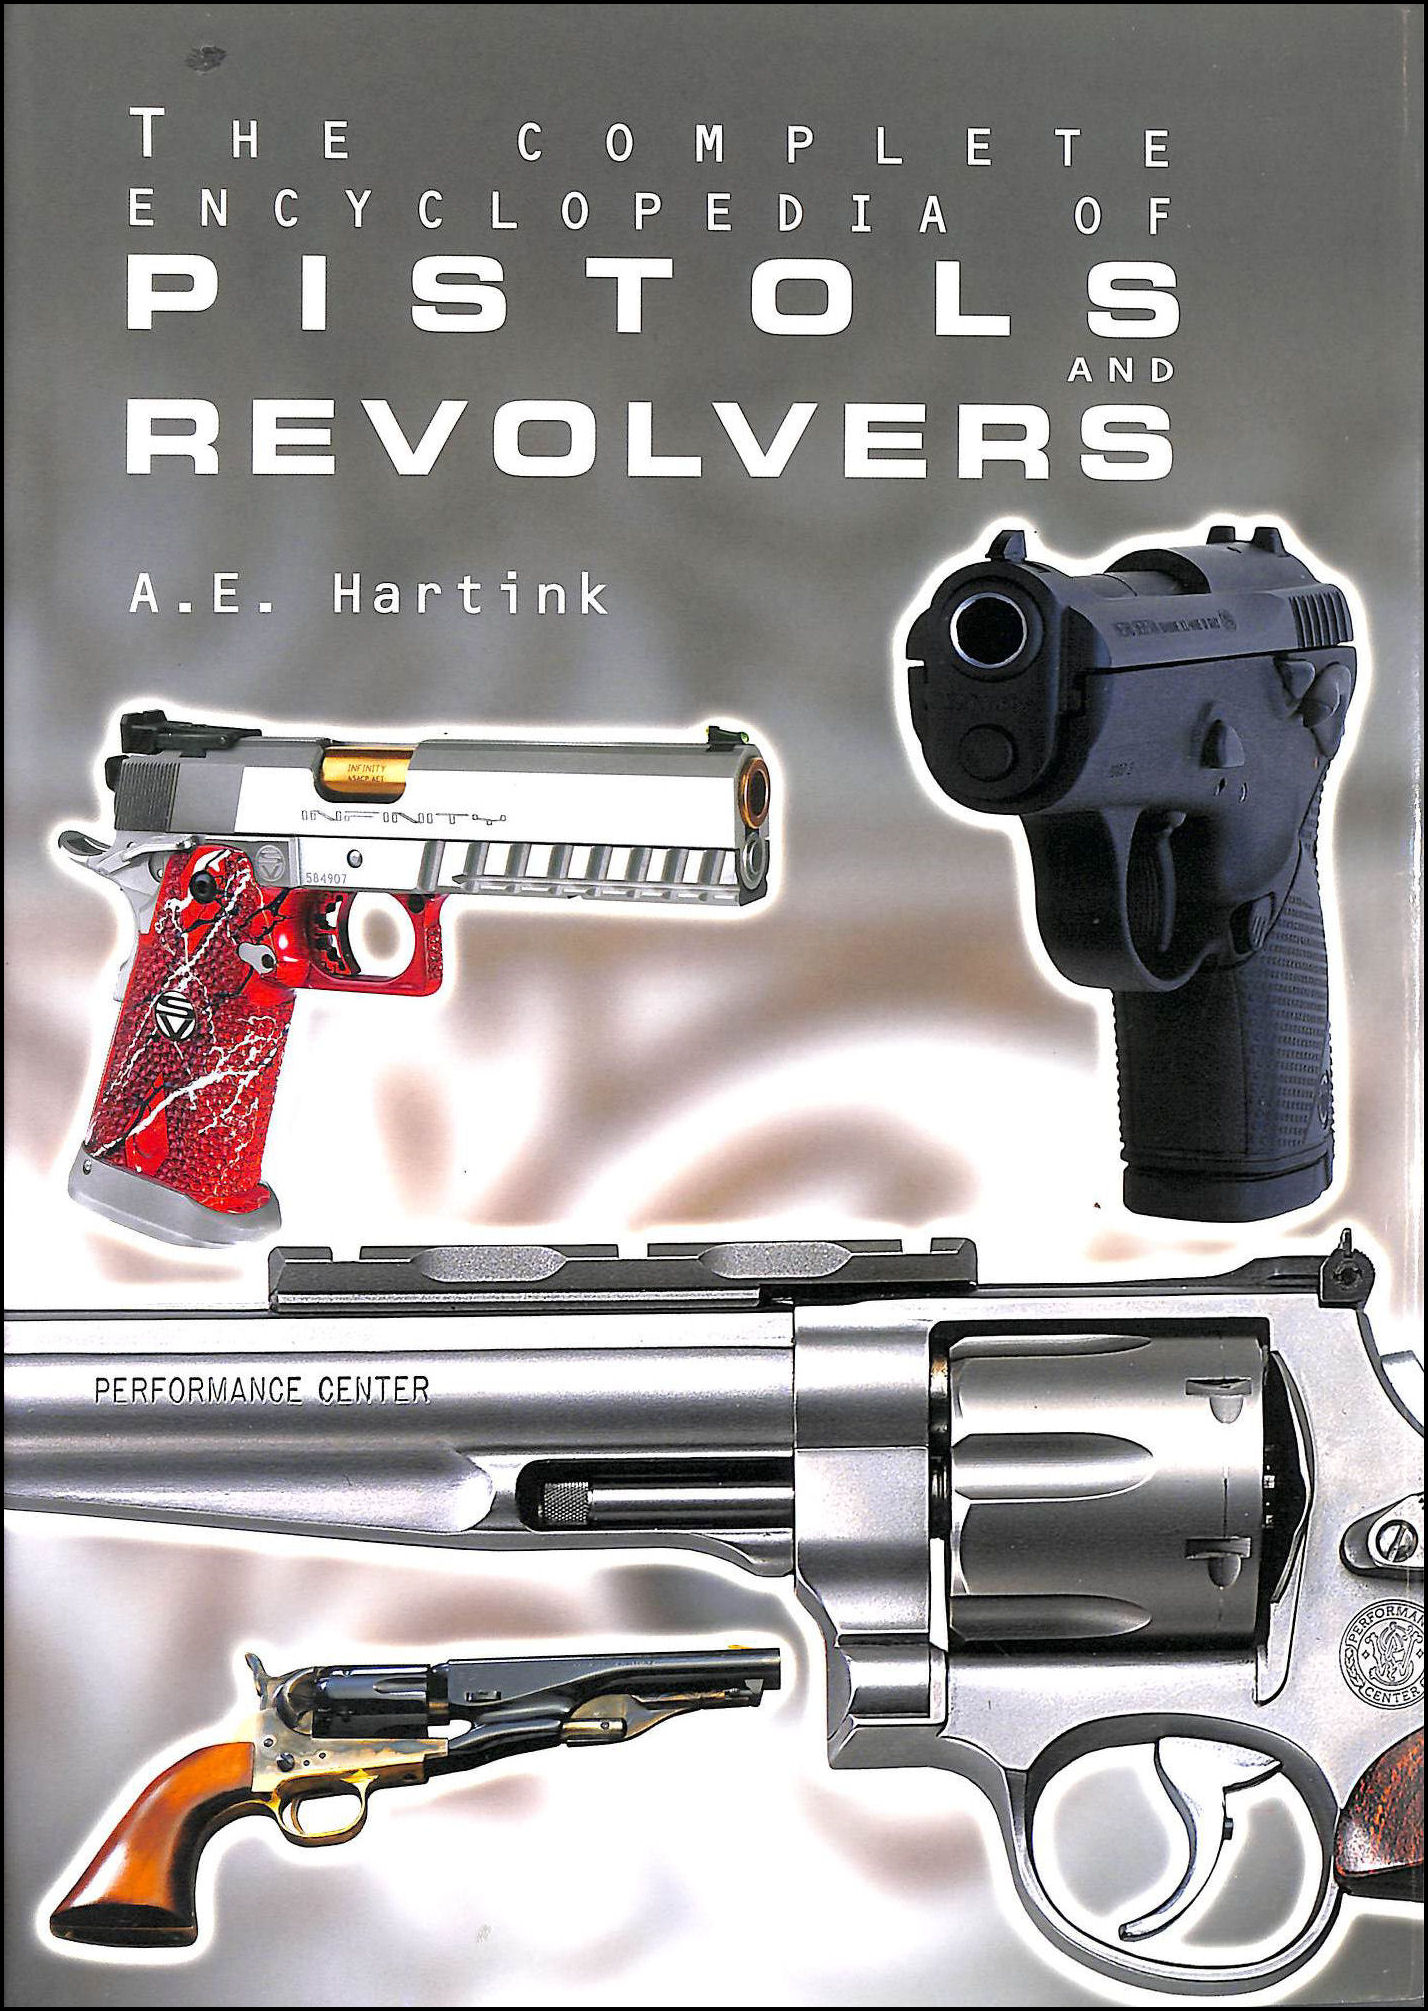 The Complete Encyclopedia of Pistols and Revolvers., A. E. Hartink